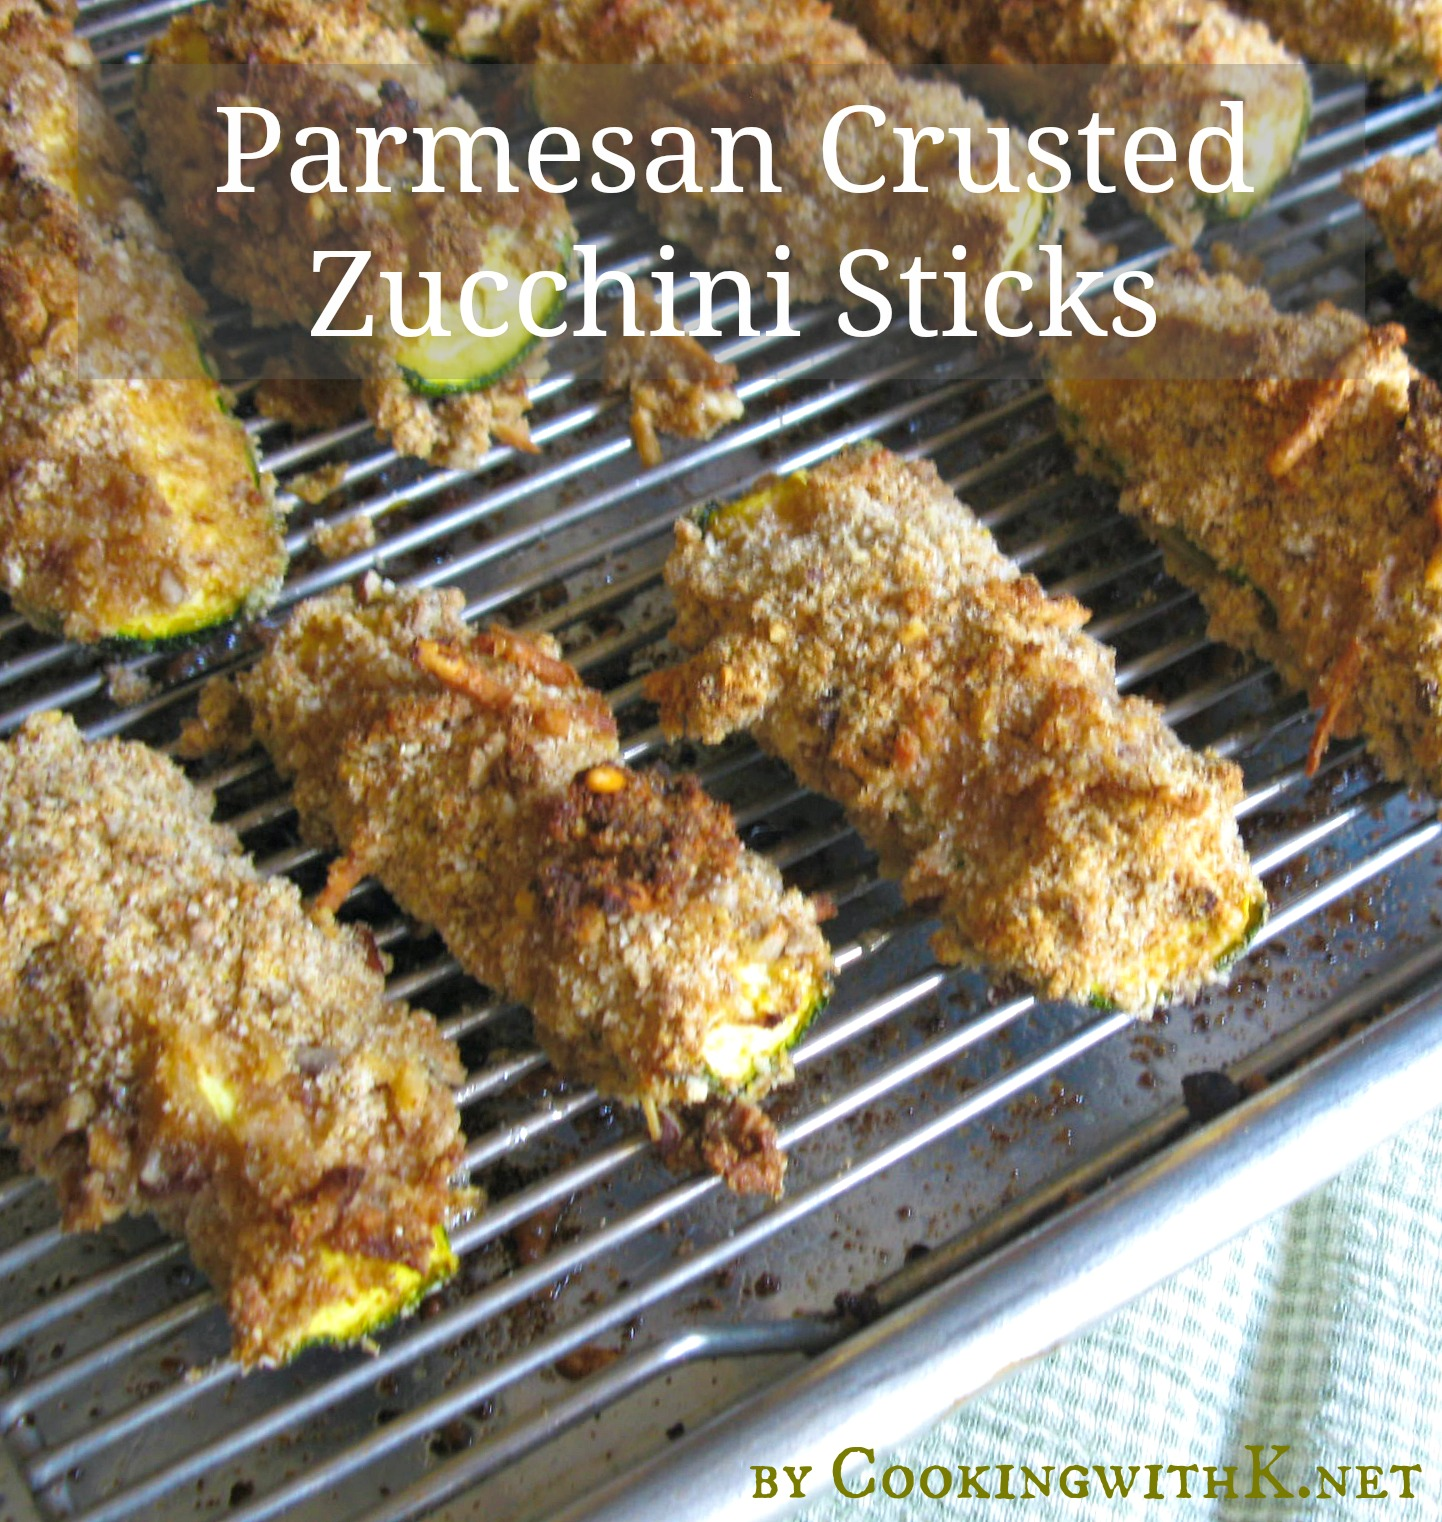 ... which brought about this recipe for Parmesan Crusted Zucchini Sticks